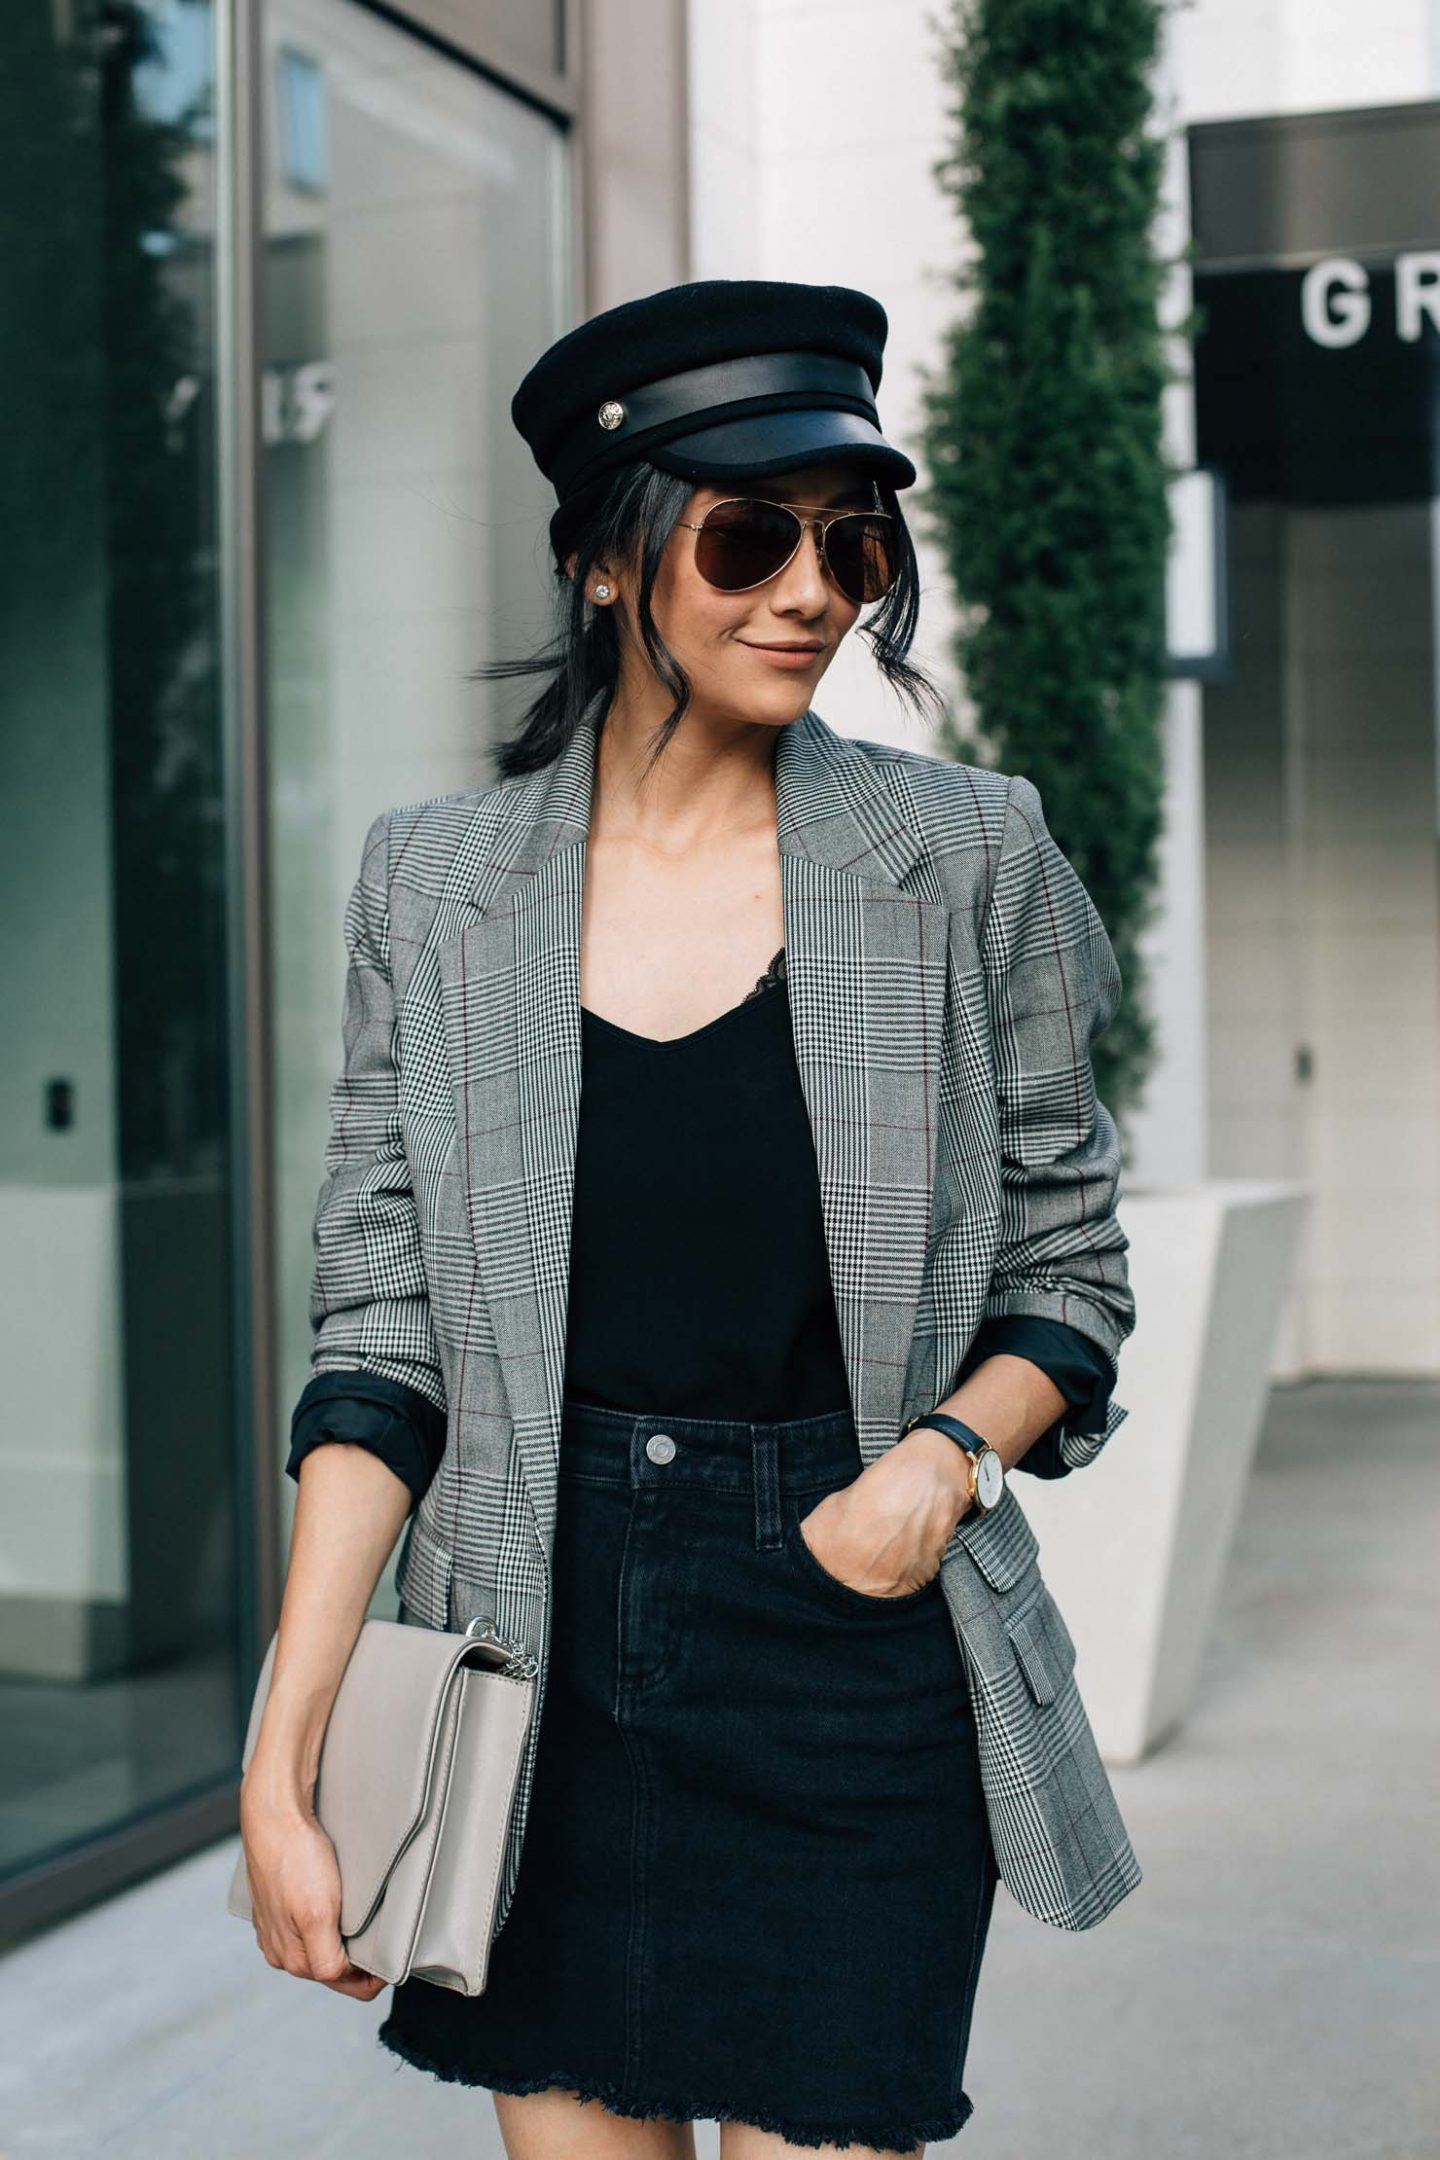 7 stylish looks ways to style a black camisole